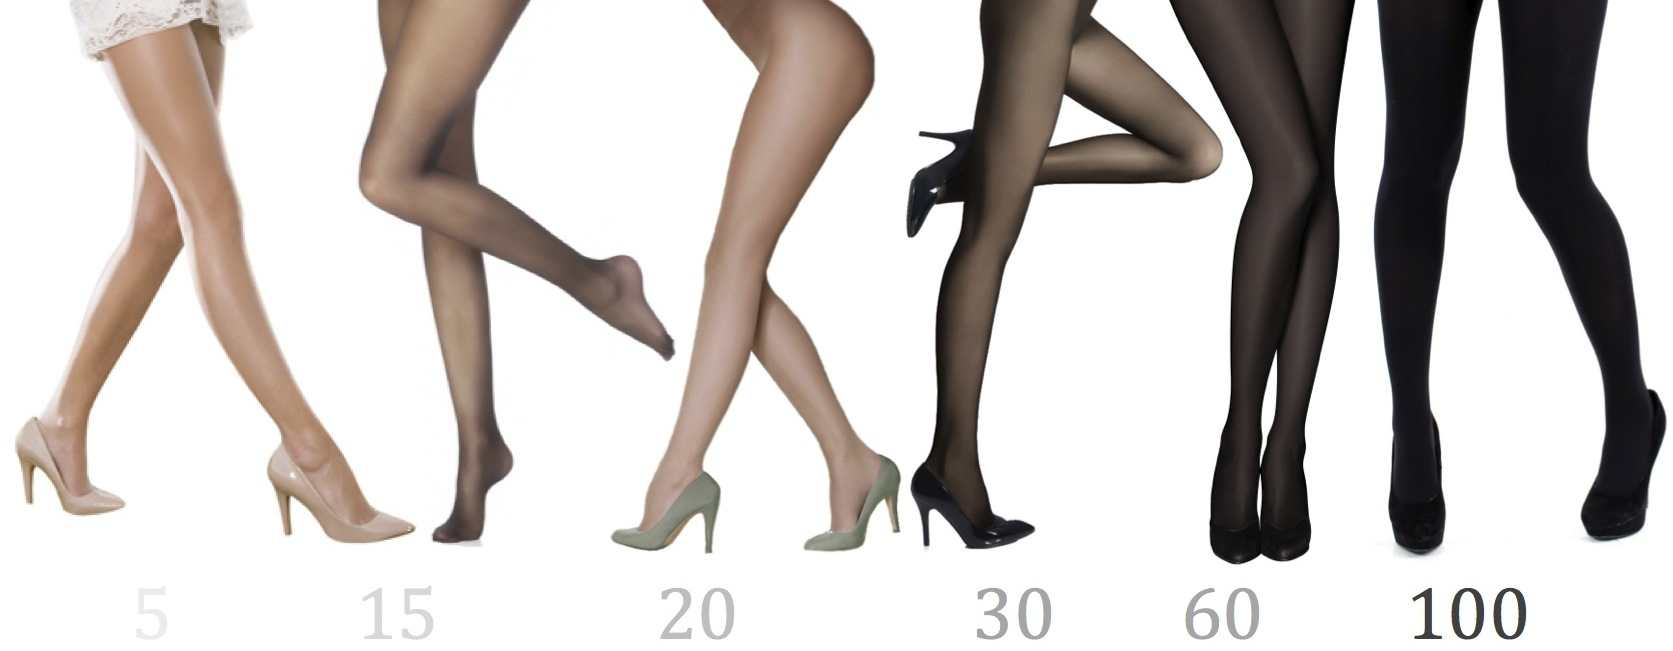 50da1db5283 The Tight Spot - The Ultimate Hosiery Glossary